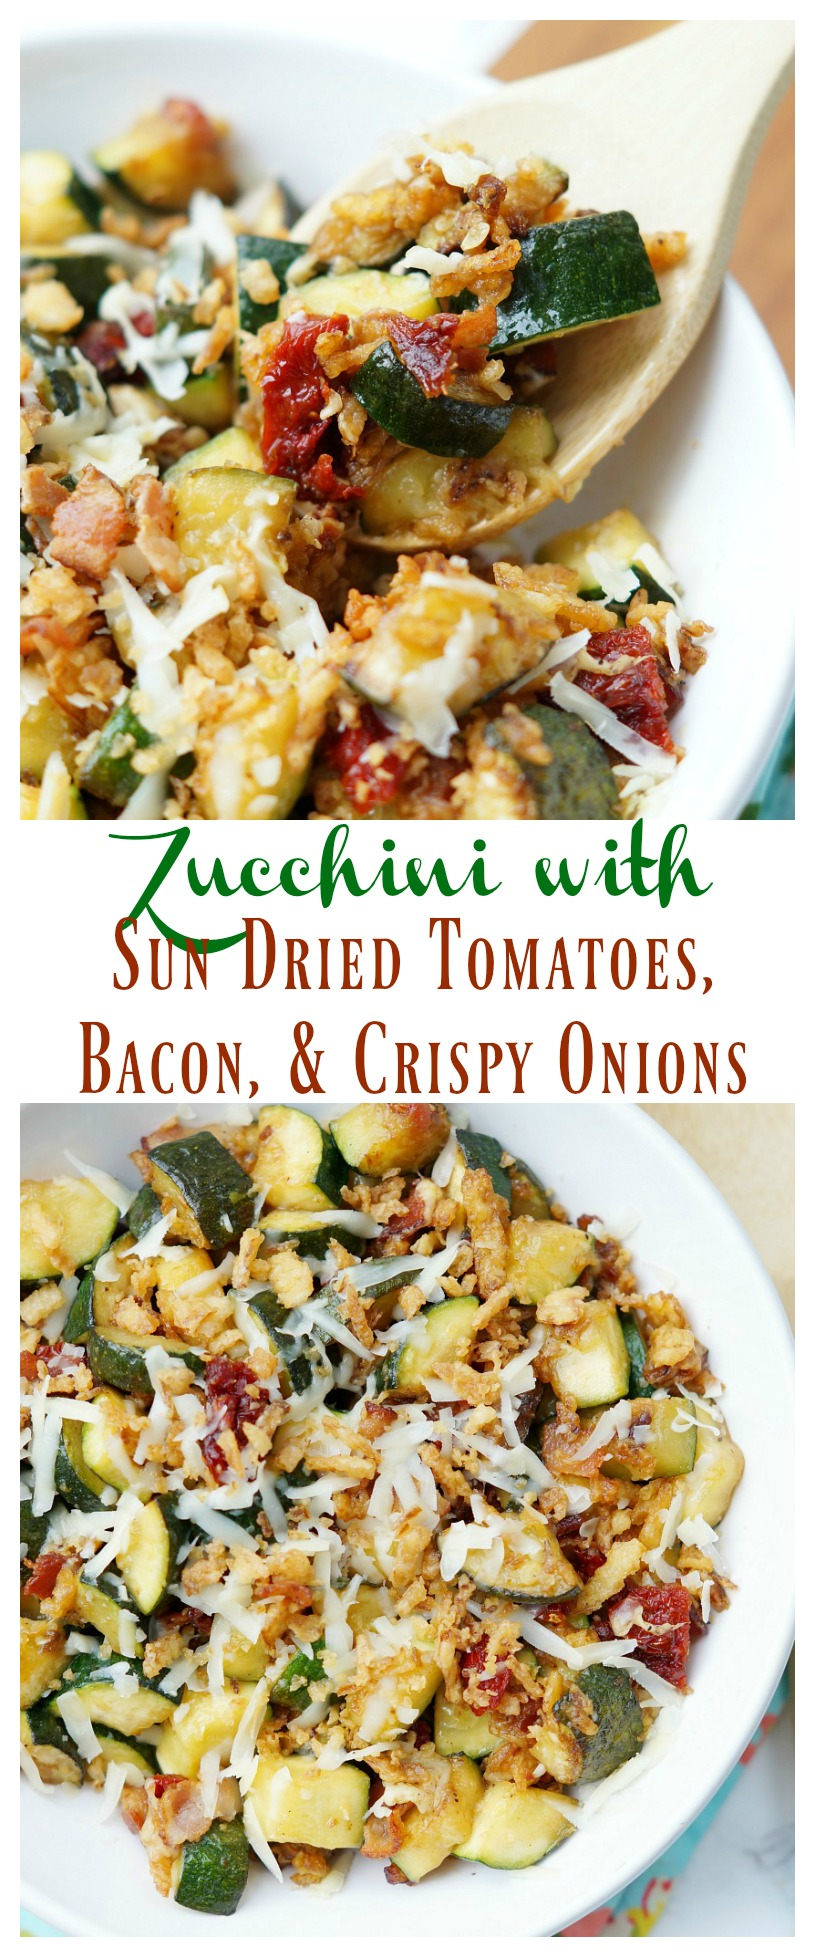 Zucchini with Sun Dried Tomatoes, Bacon, and Crispy Onions. A delicious side dish perfect for summertime zucchini or any time of the year!